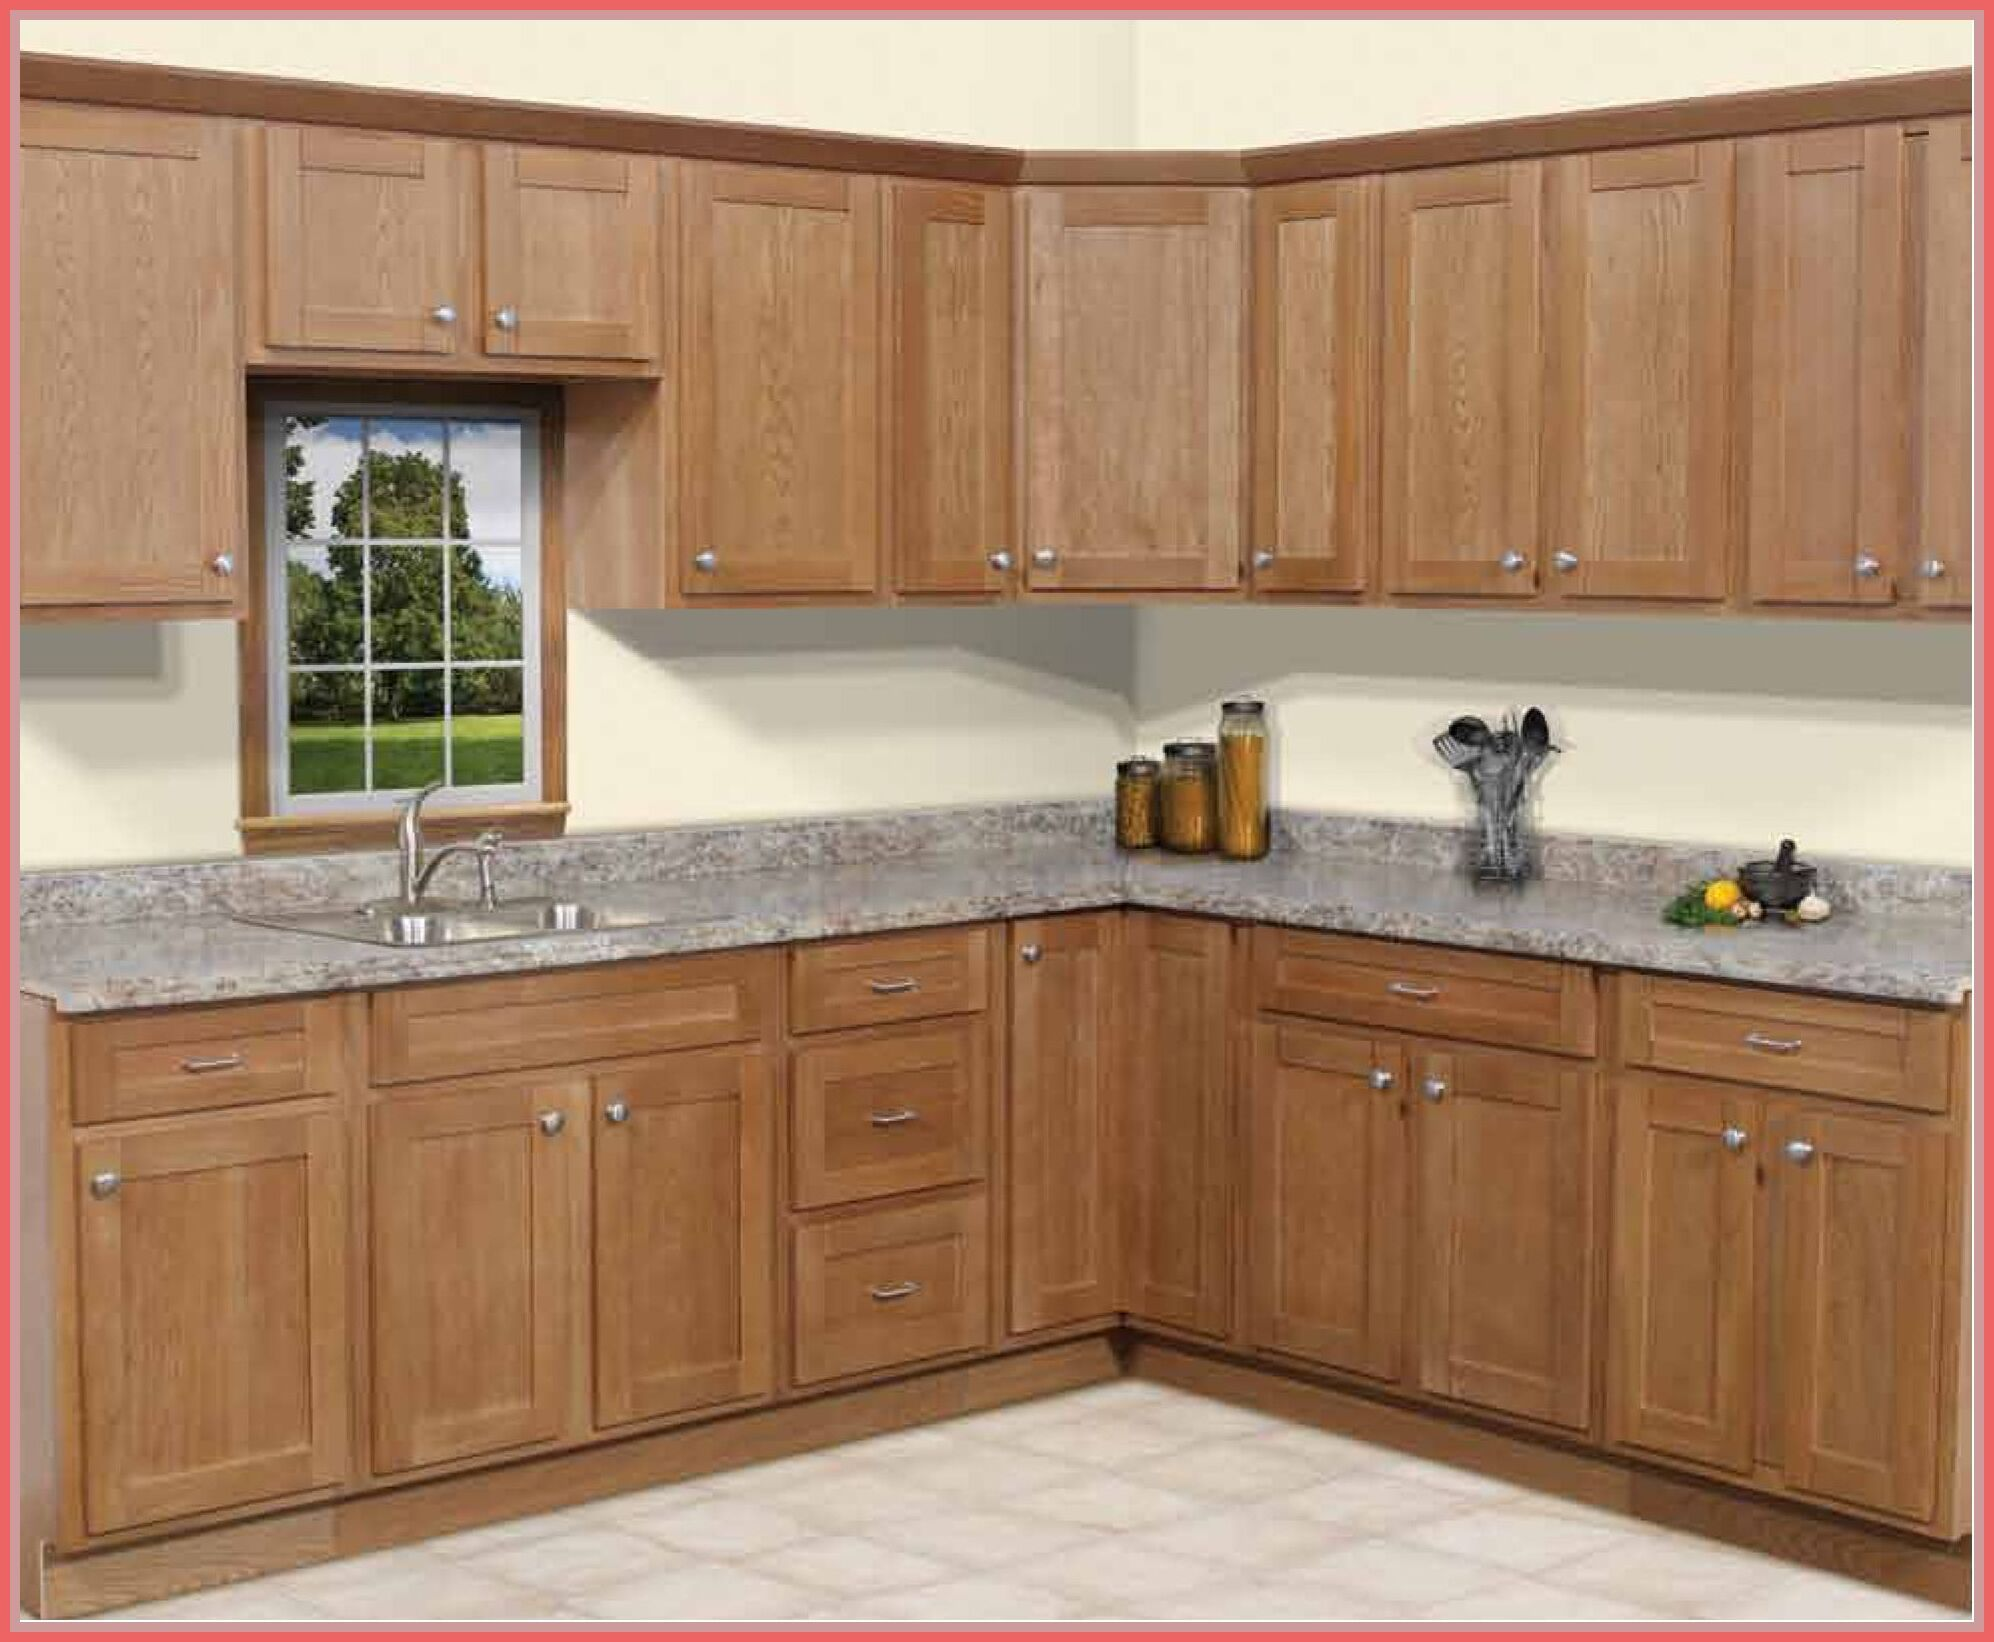 79 Reference Of Shaker Style Oak Kitchen Cabinets In 2020 Shaker Style Kitchen Cabinets Kitchen Cabinet Styles Solid Wood Kitchen Cabinets